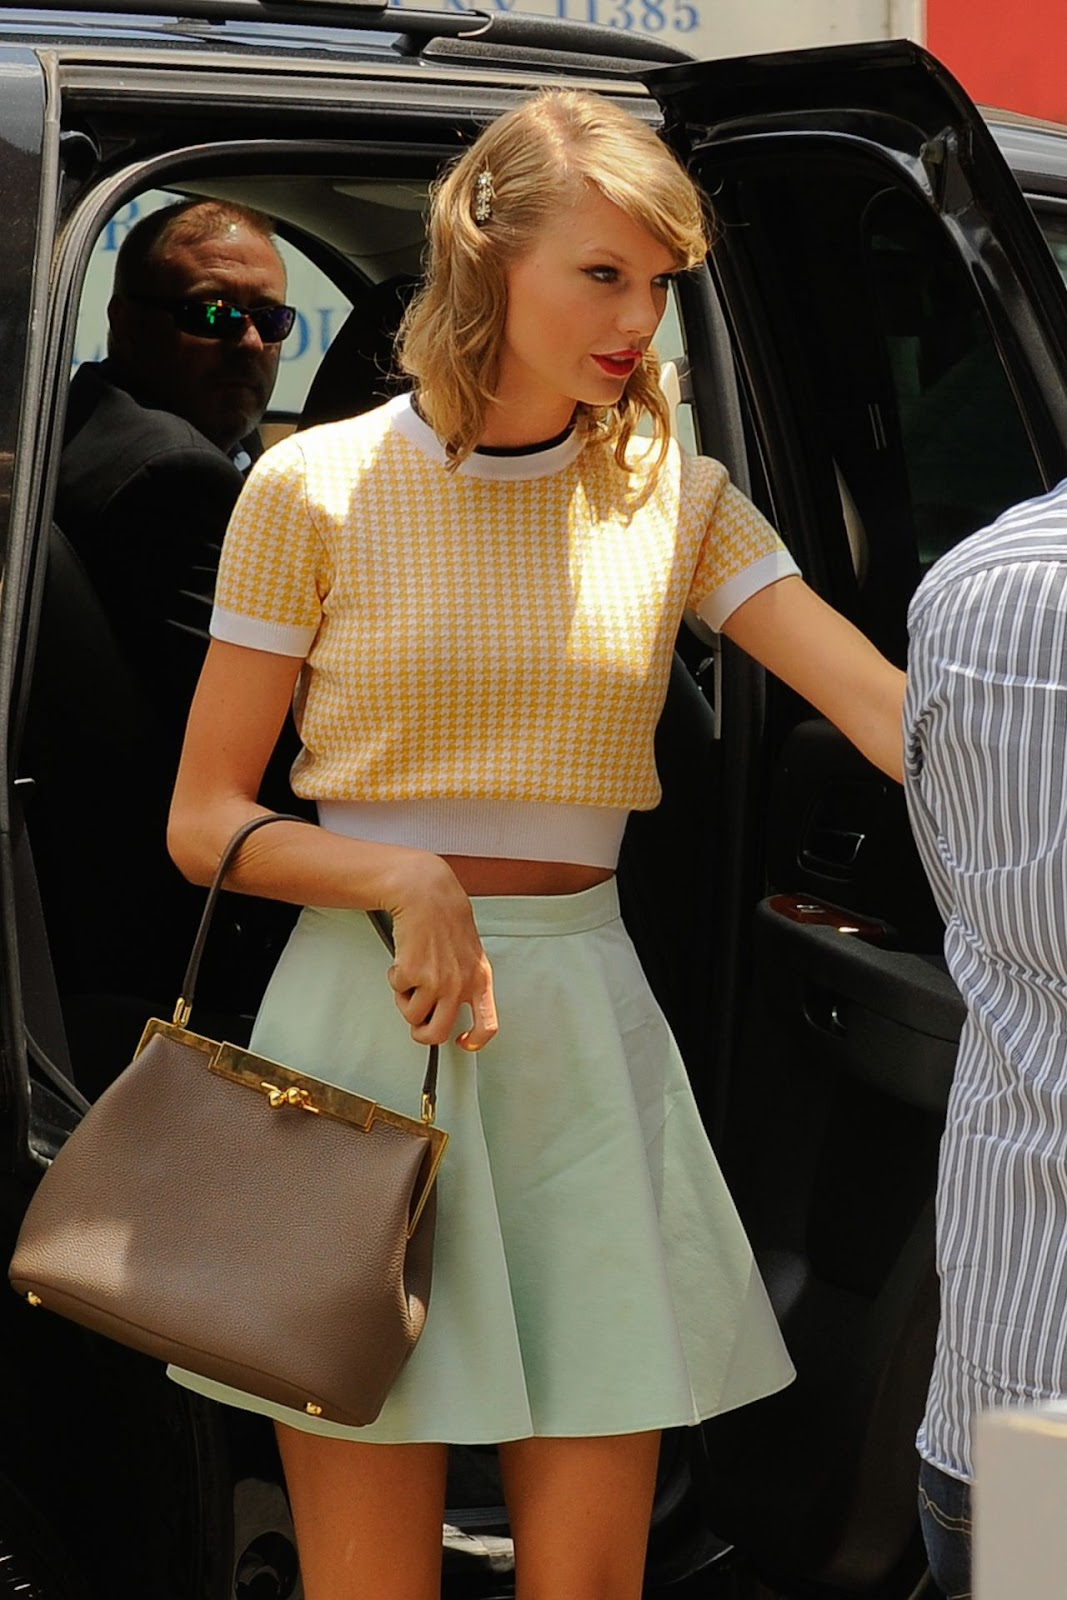 Taylor Swift channels the 50s in a vintage inspired pastel look in NY